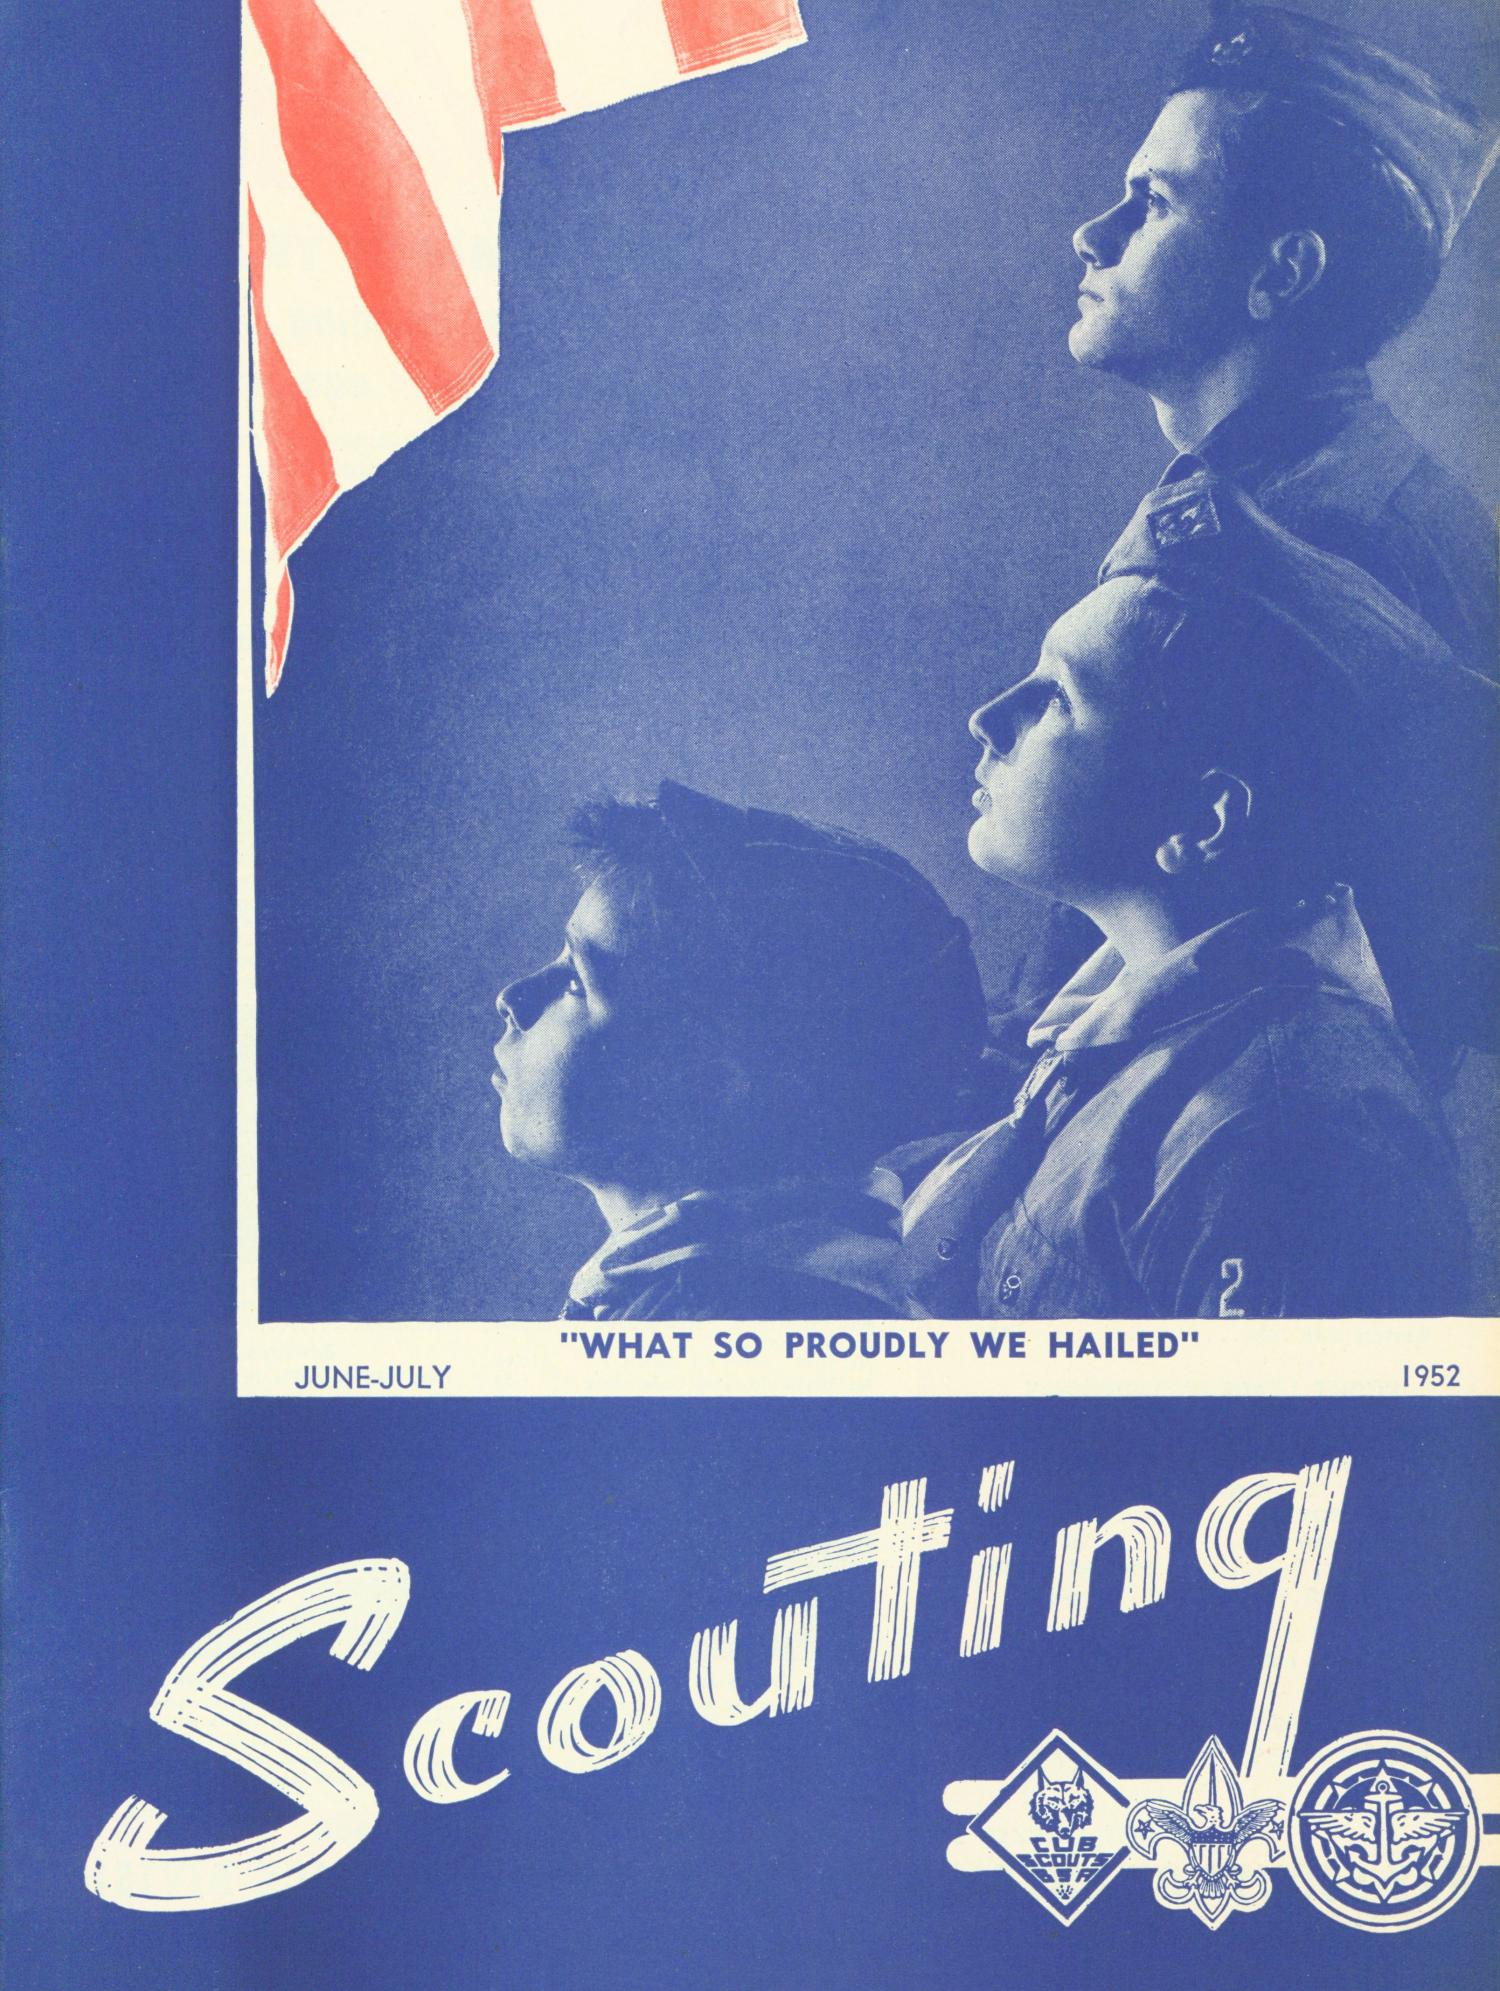 Scouting, Volume 40, Number 6, June-July 1952                                                                                                      Front Cover